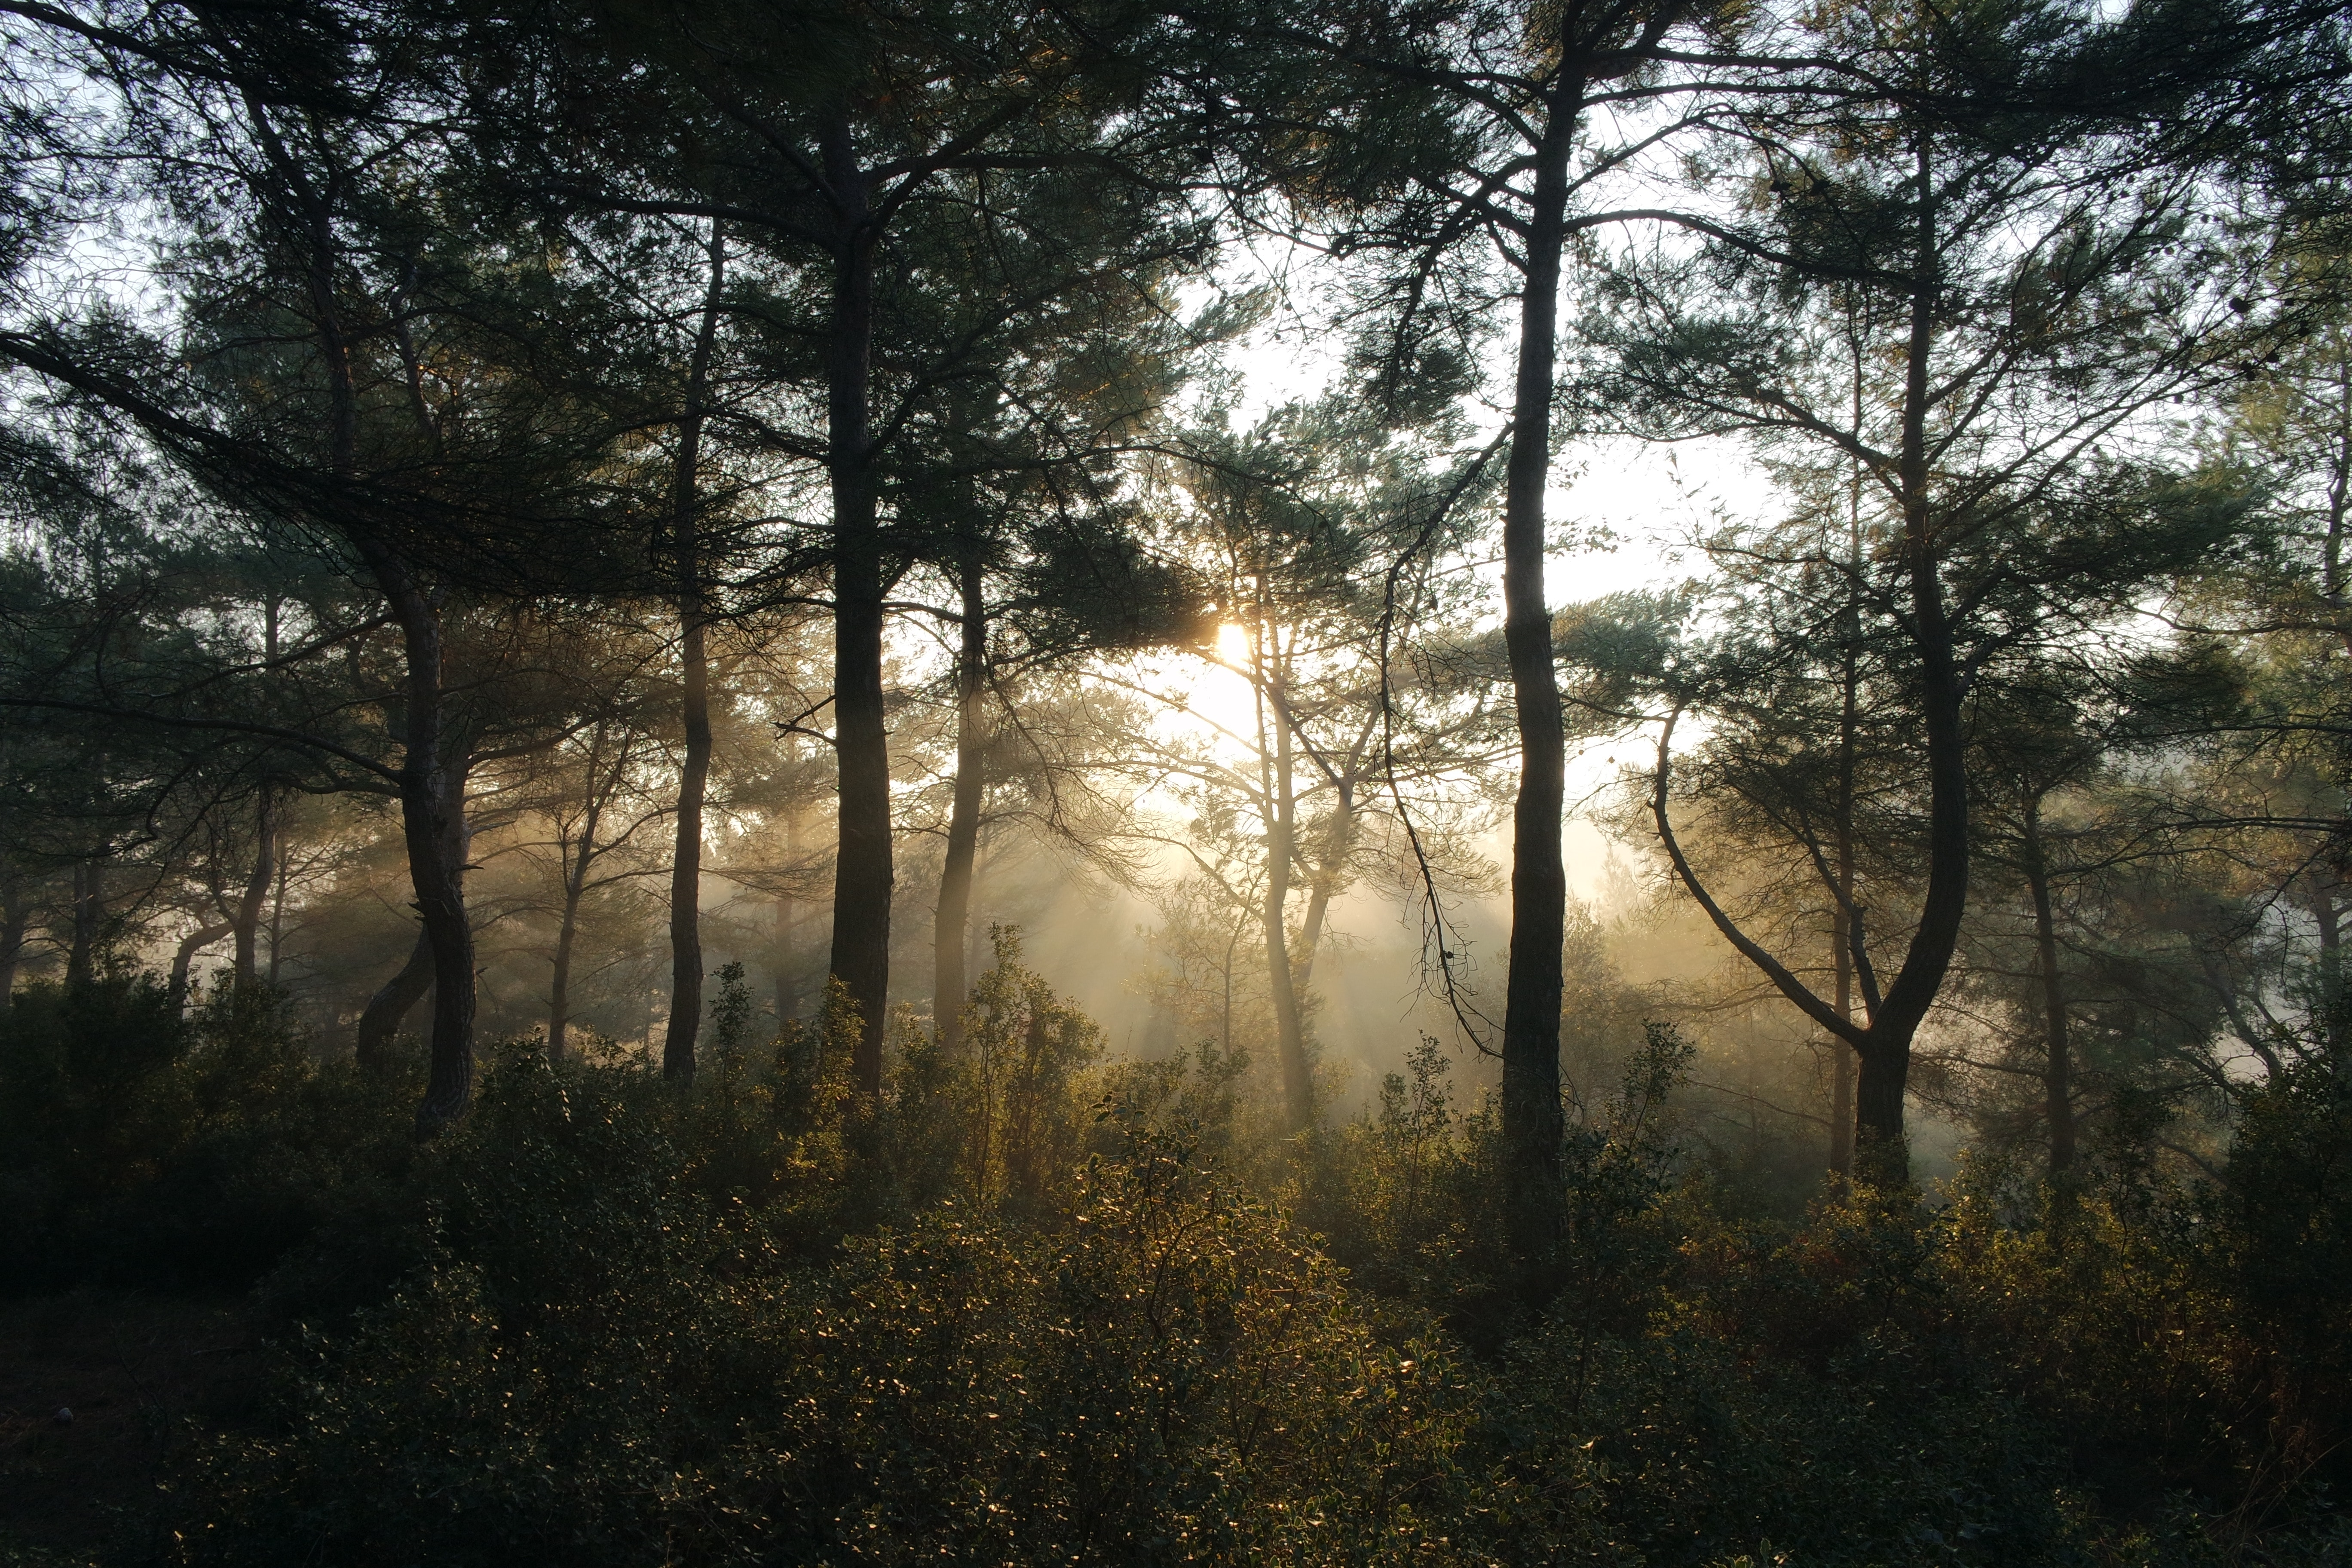 bushes-forest-nature-23547